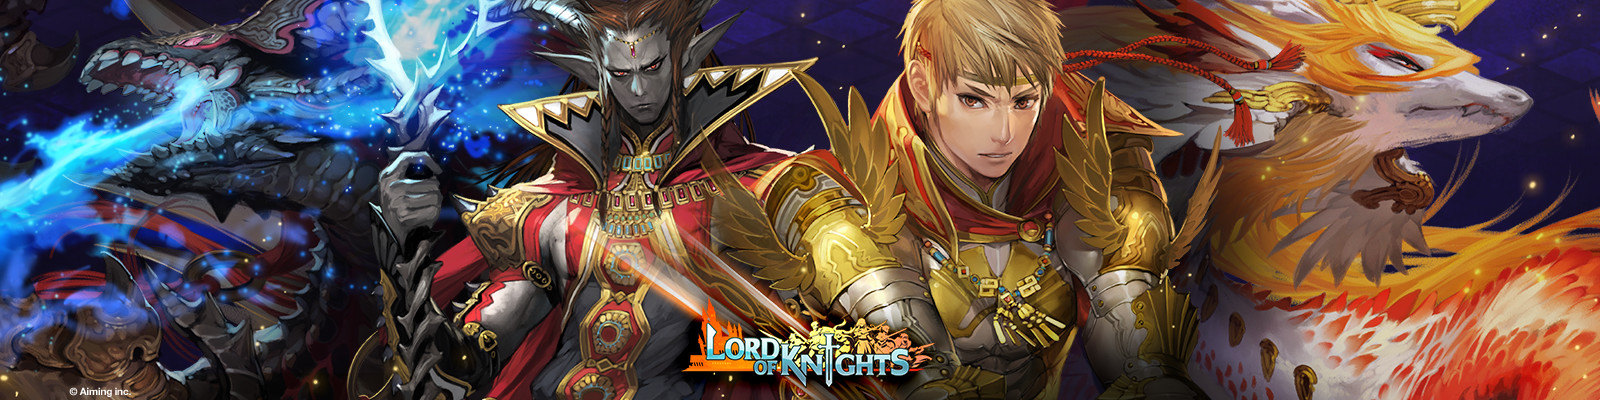 Lord of Knights